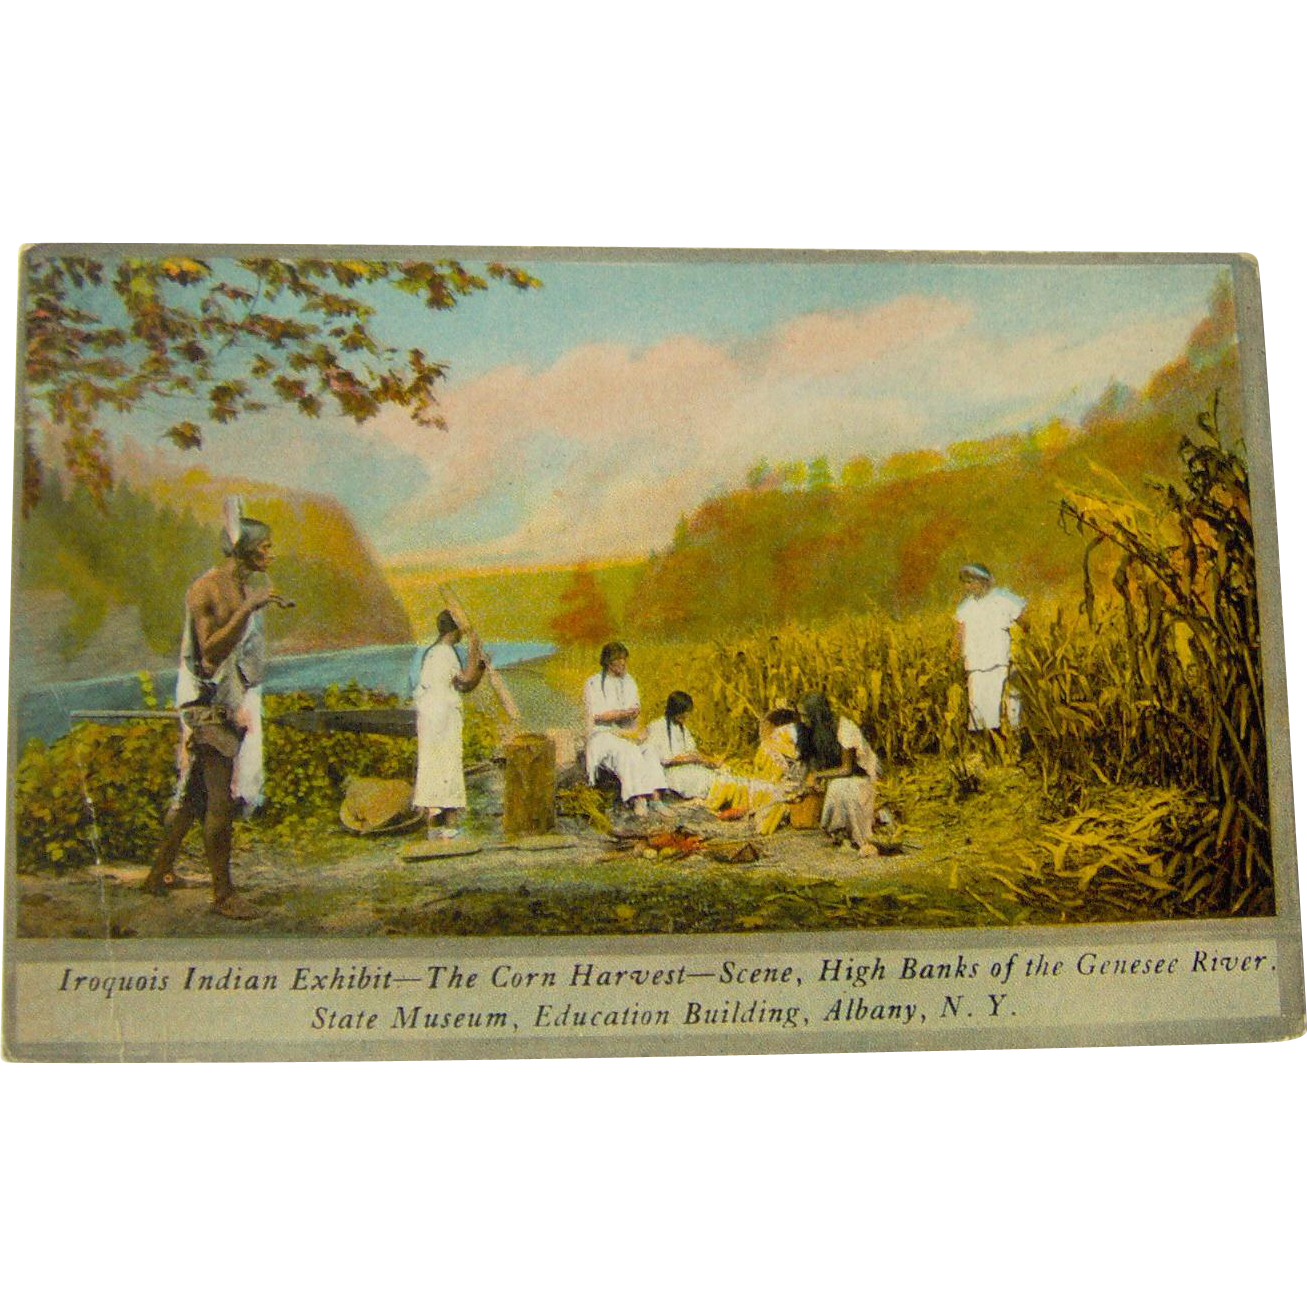 Vintage Iroquois Indian Exhibit The Corn Harvest